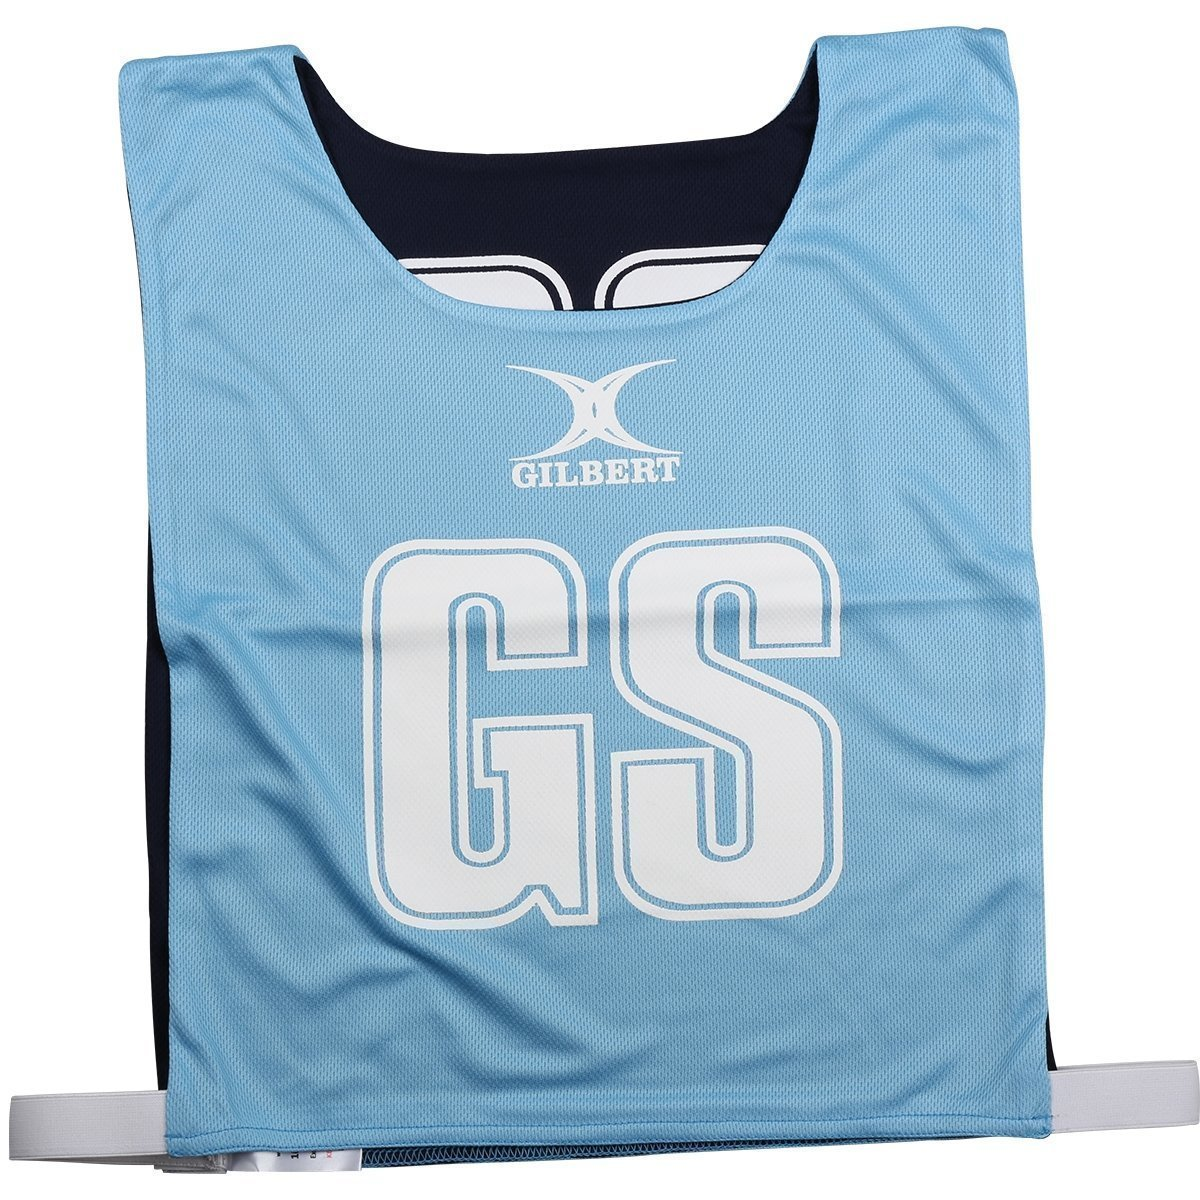 Gilbert Reversible Netball Bibs Set